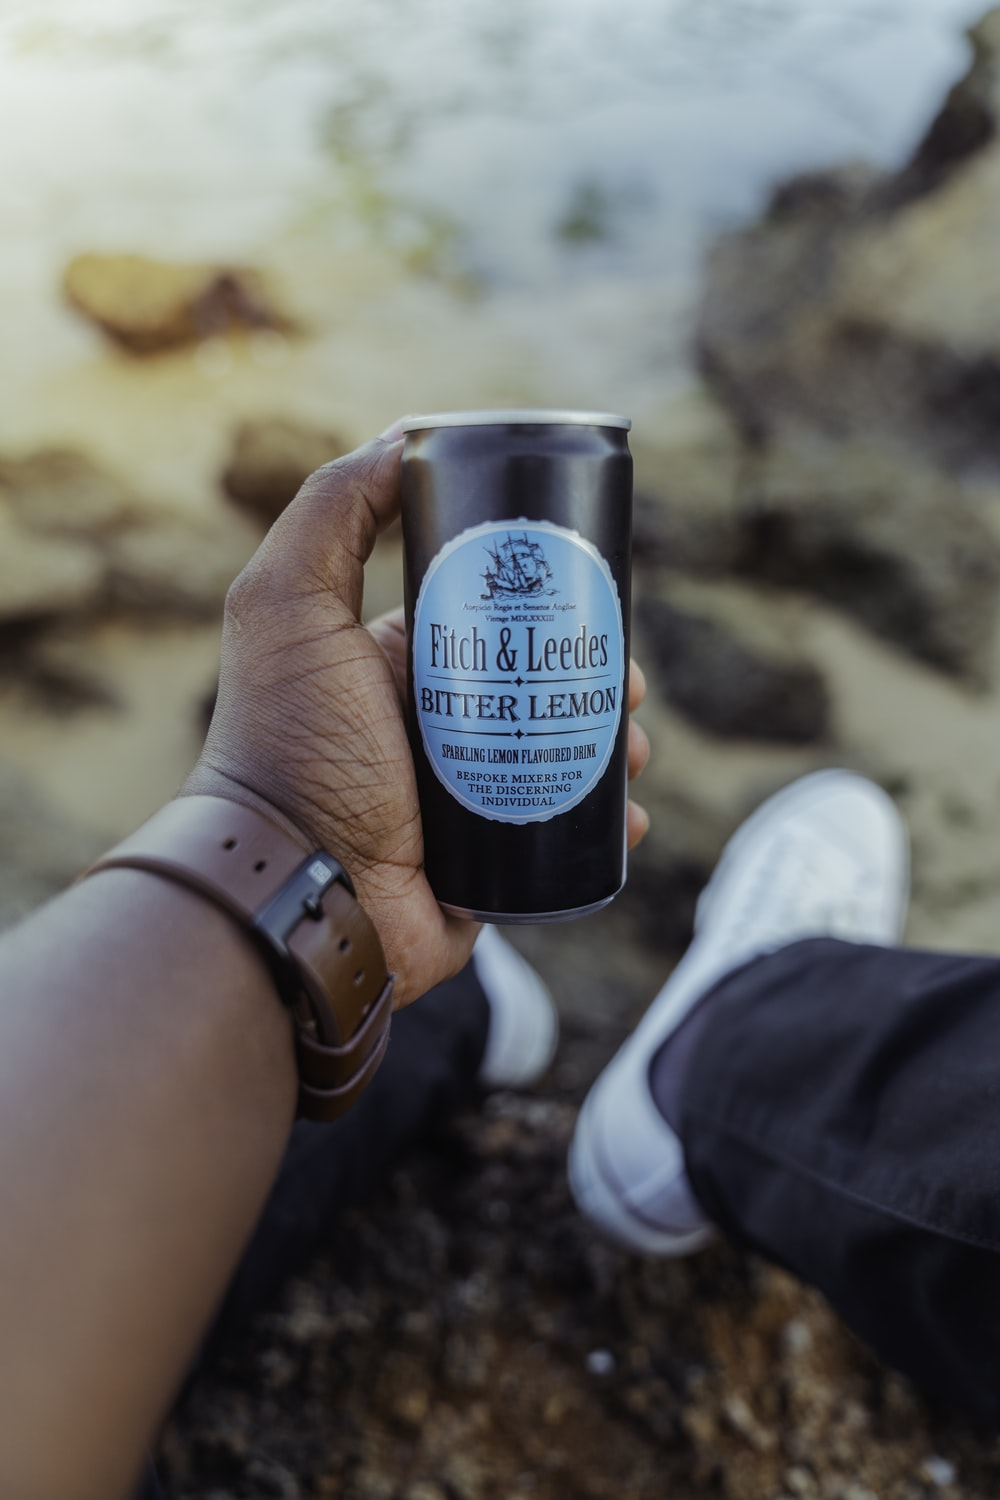 person holding blue and black the body shop bottle